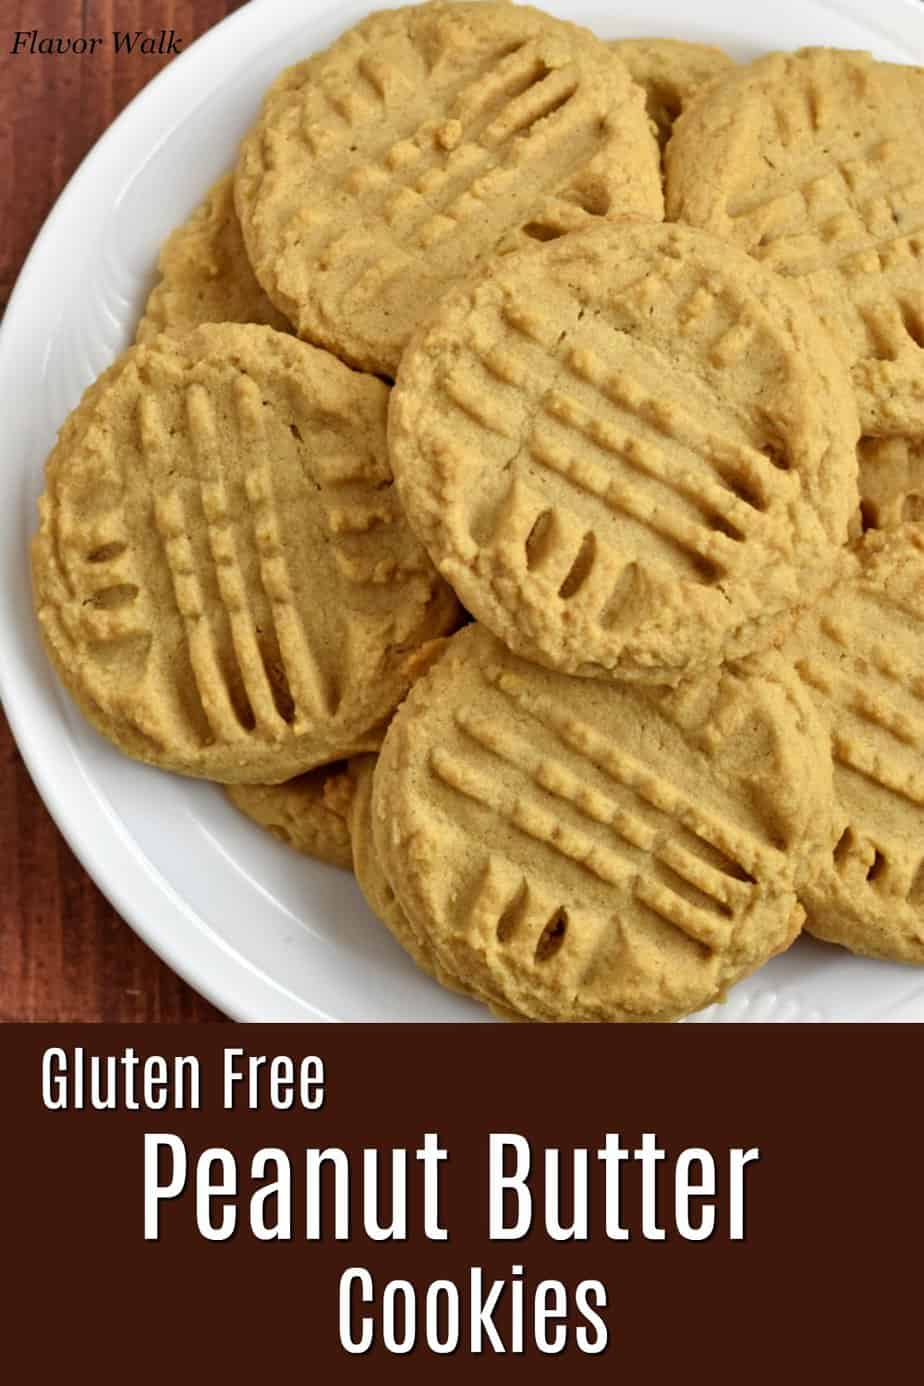 Top image is an overhead view of a plate of gluten free peanut butter cookies and bottom image is a brown text overlay.